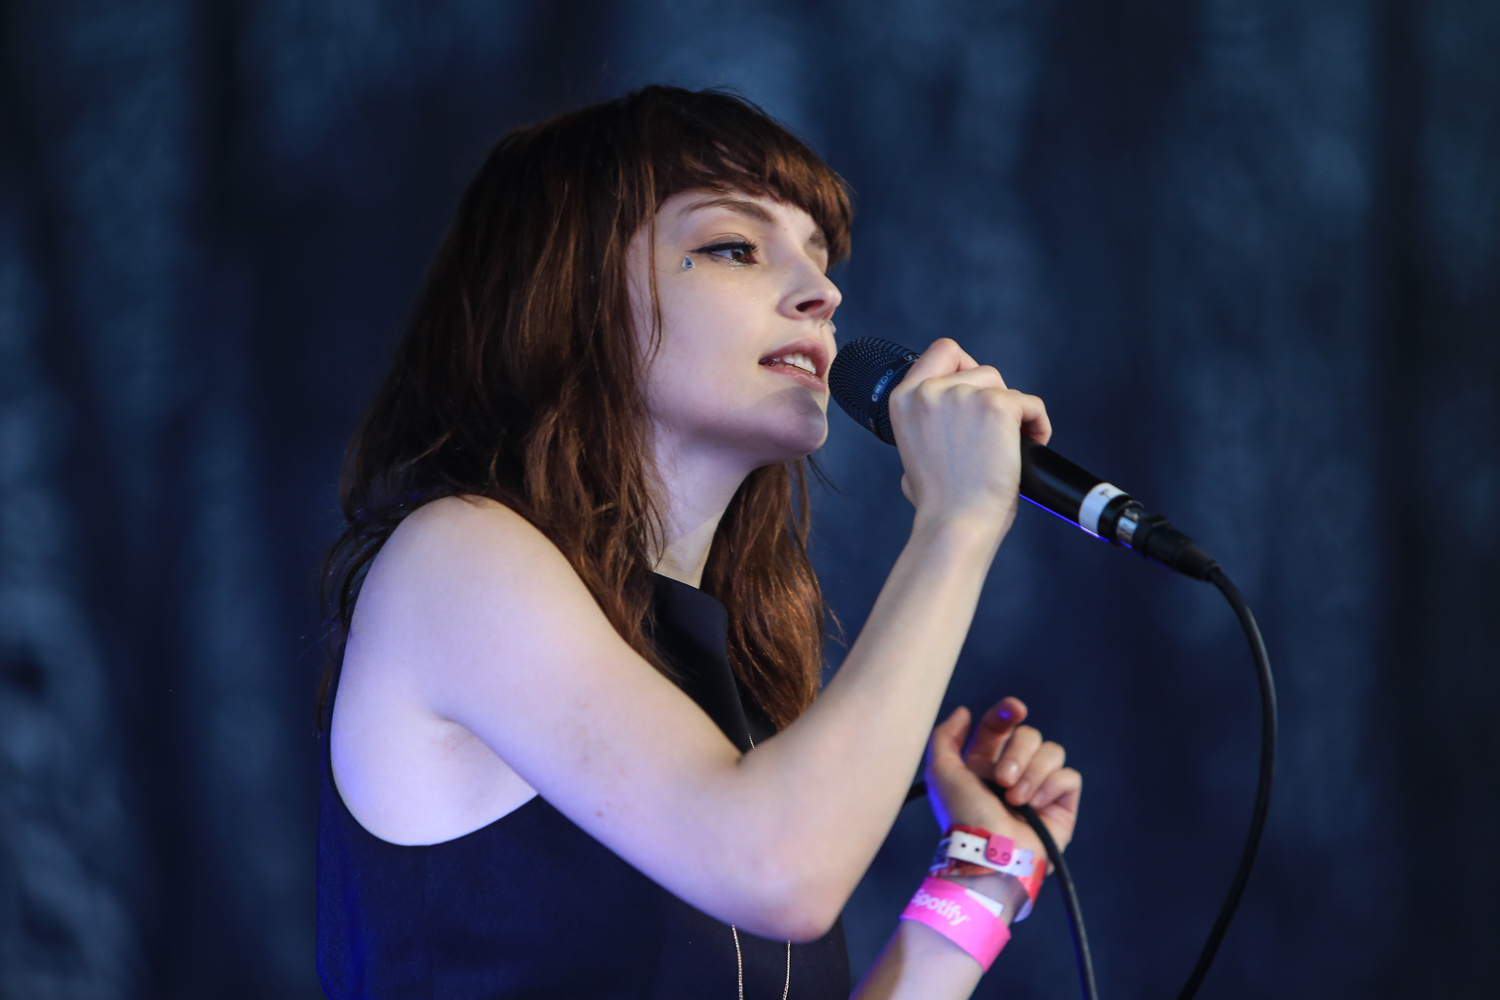 Chvrches perform  at the Spotify House @SXSW2016 photo: Anna Webber/Gettyimages for Spotify